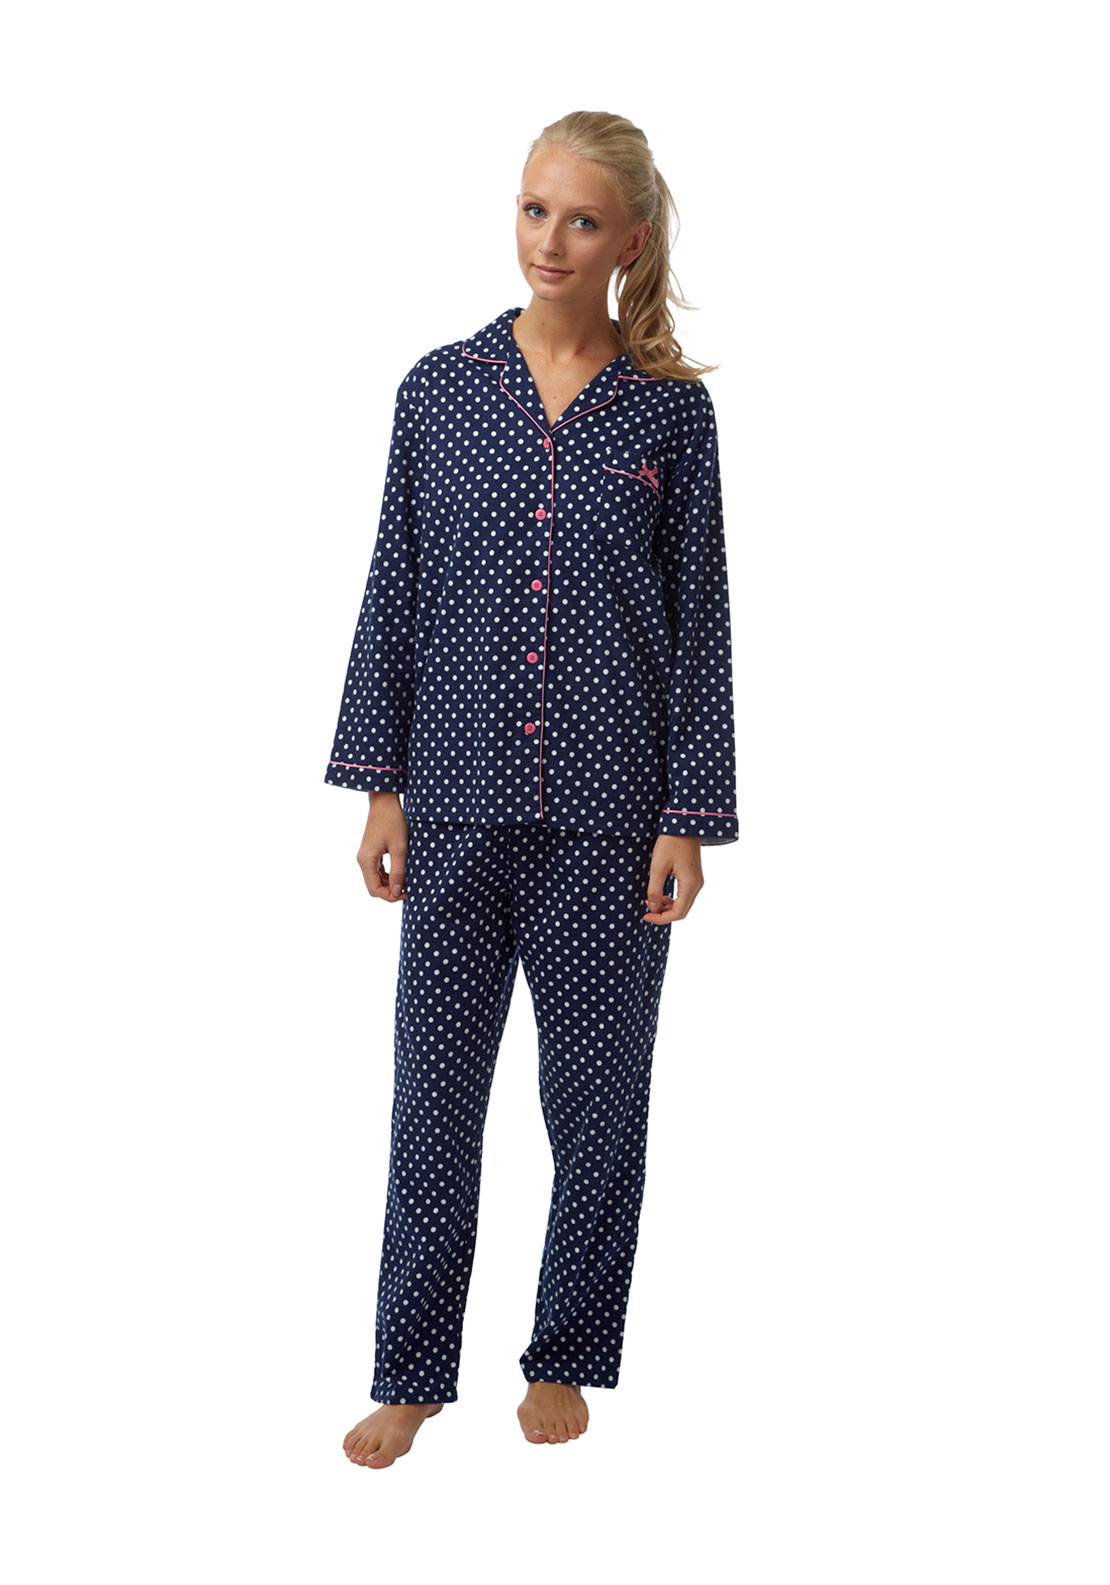 Indigo Sky Polka Dot Print Brushed Cotton Pyjama Set, Navy